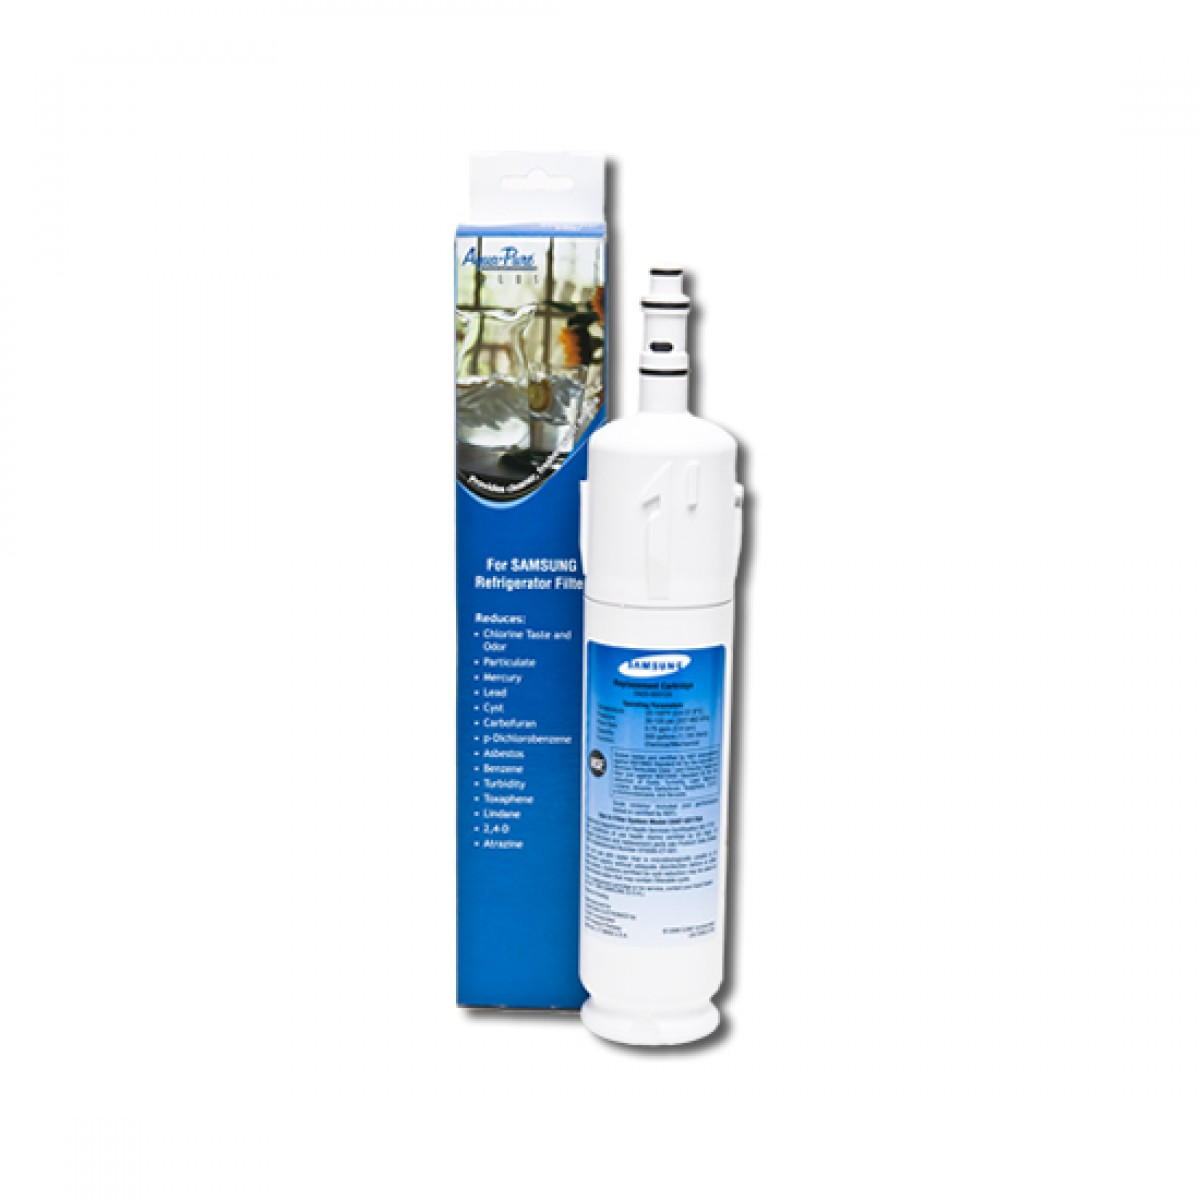 Samsung Water Filter Da29 00012a on kenmore refrigerator water filter replacement parts